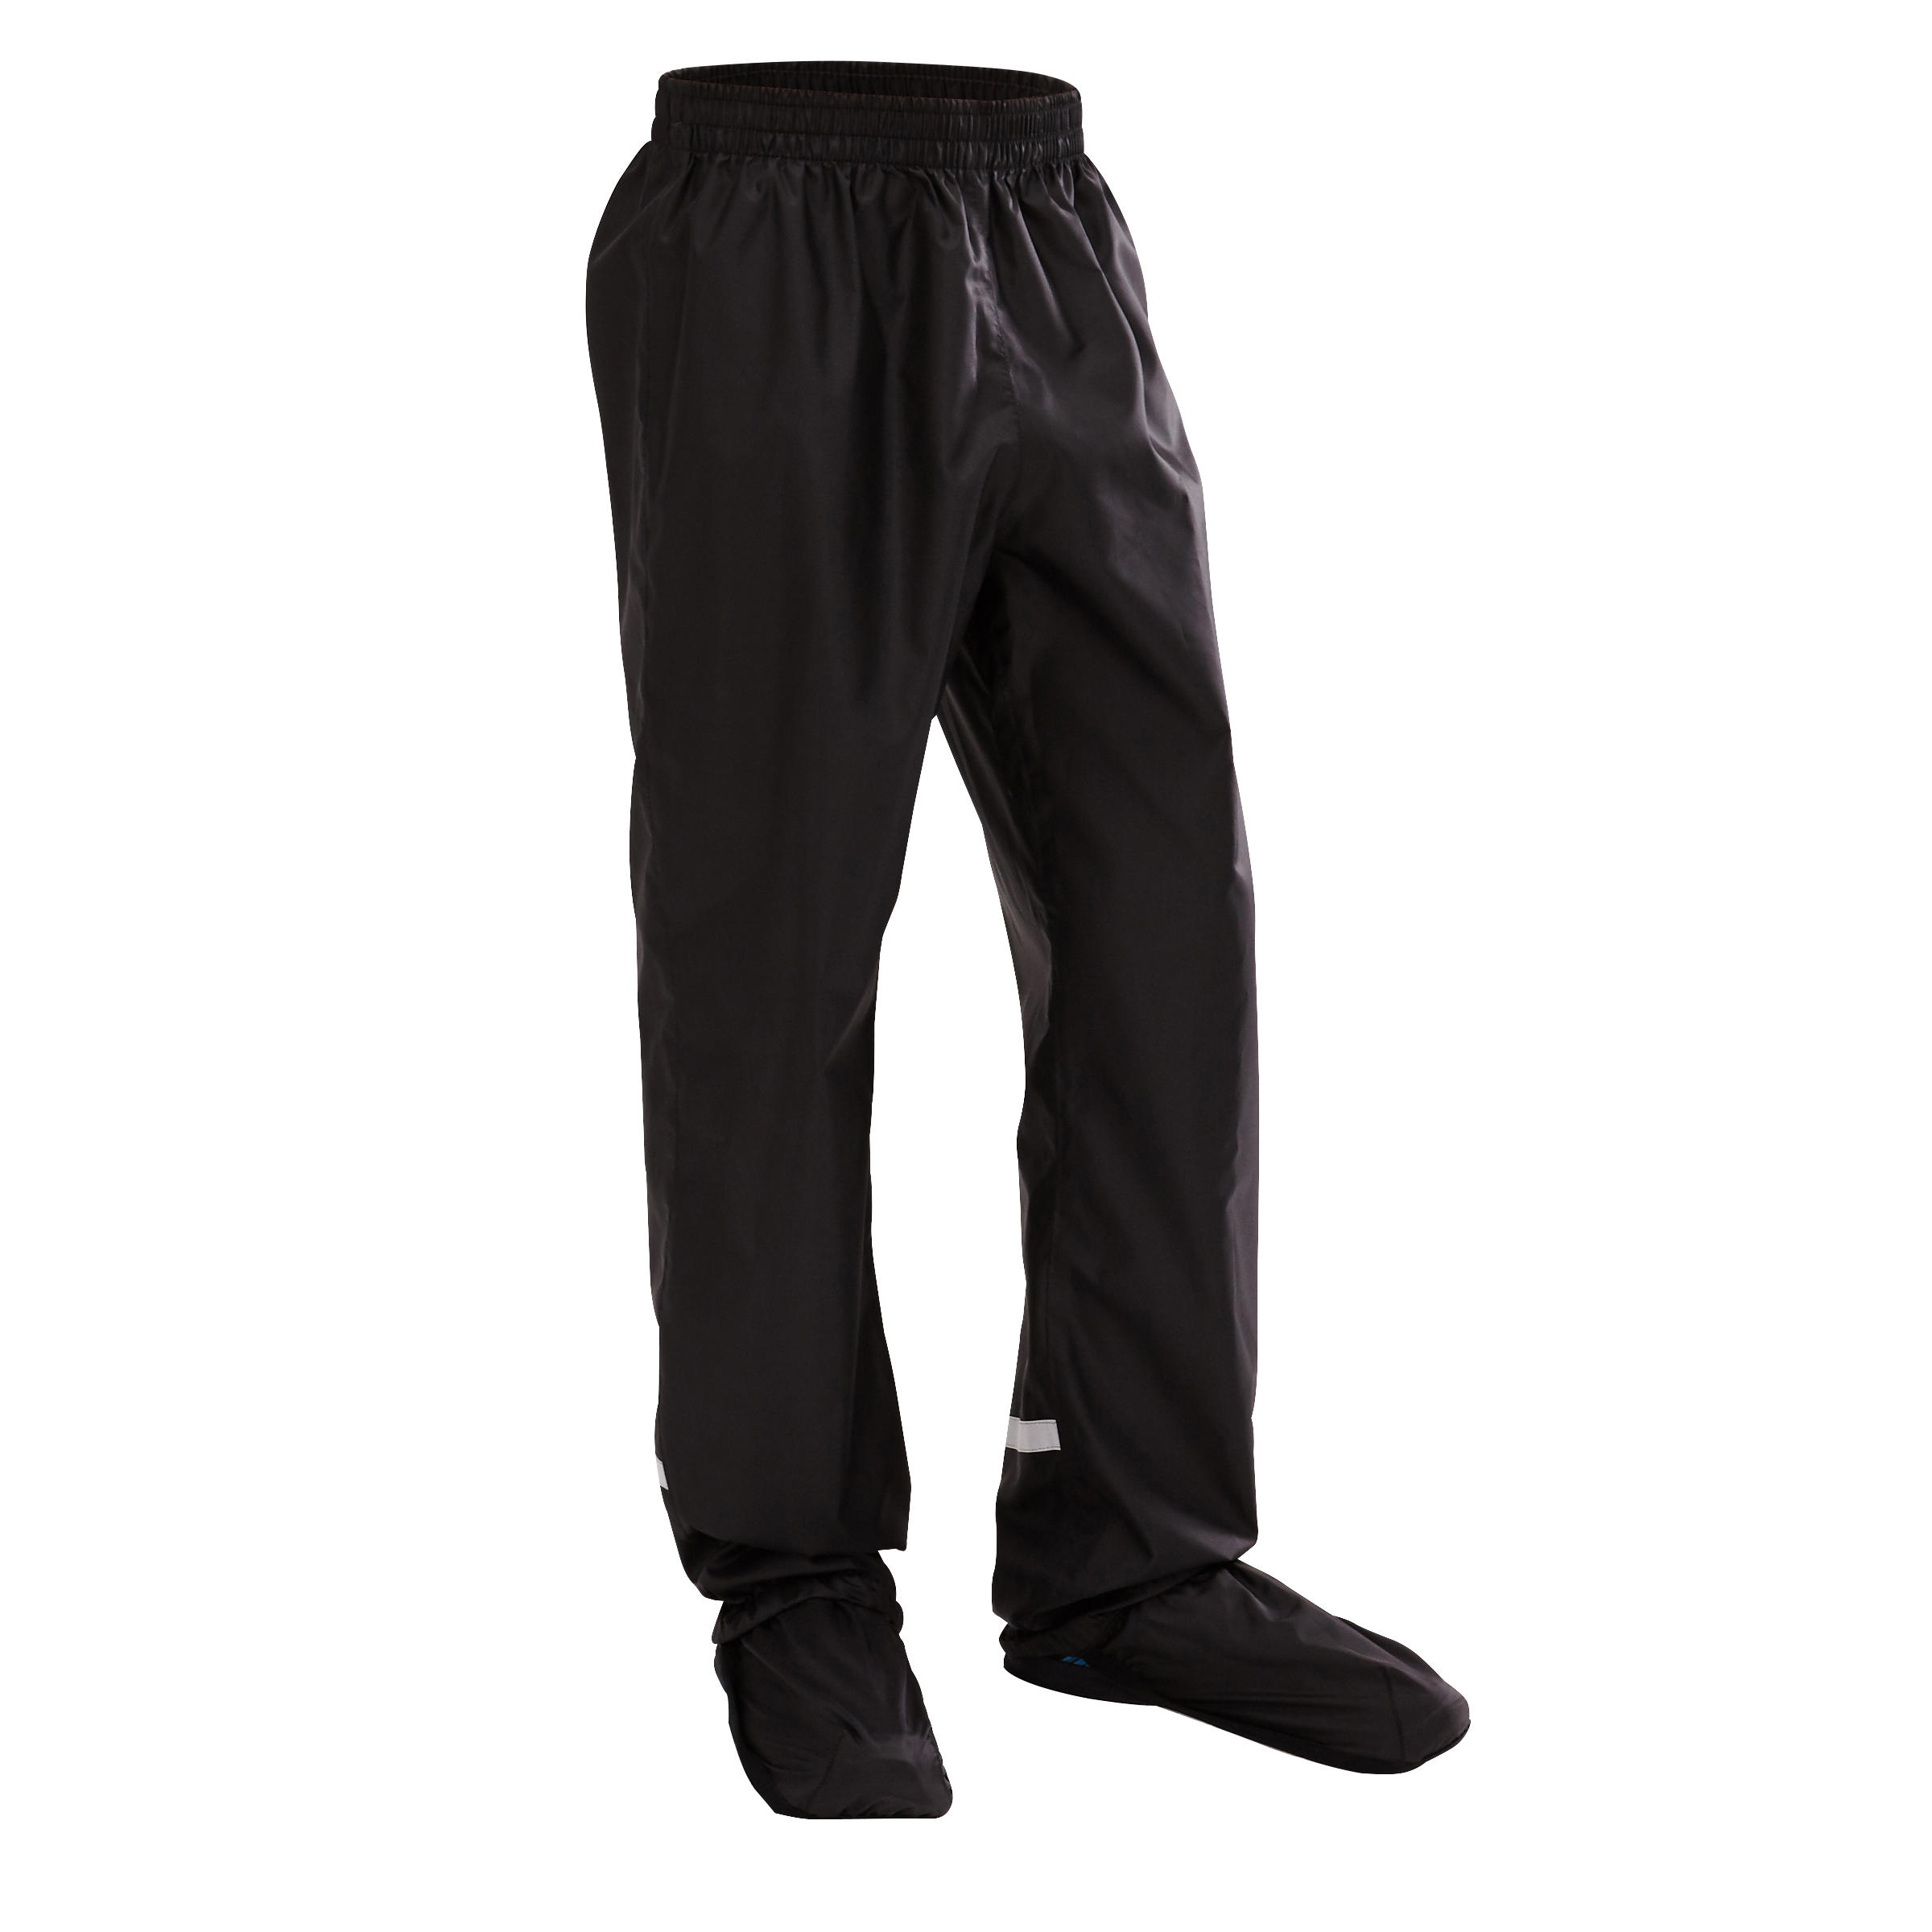 300 City Kids' Cycling Overtrousers - Black